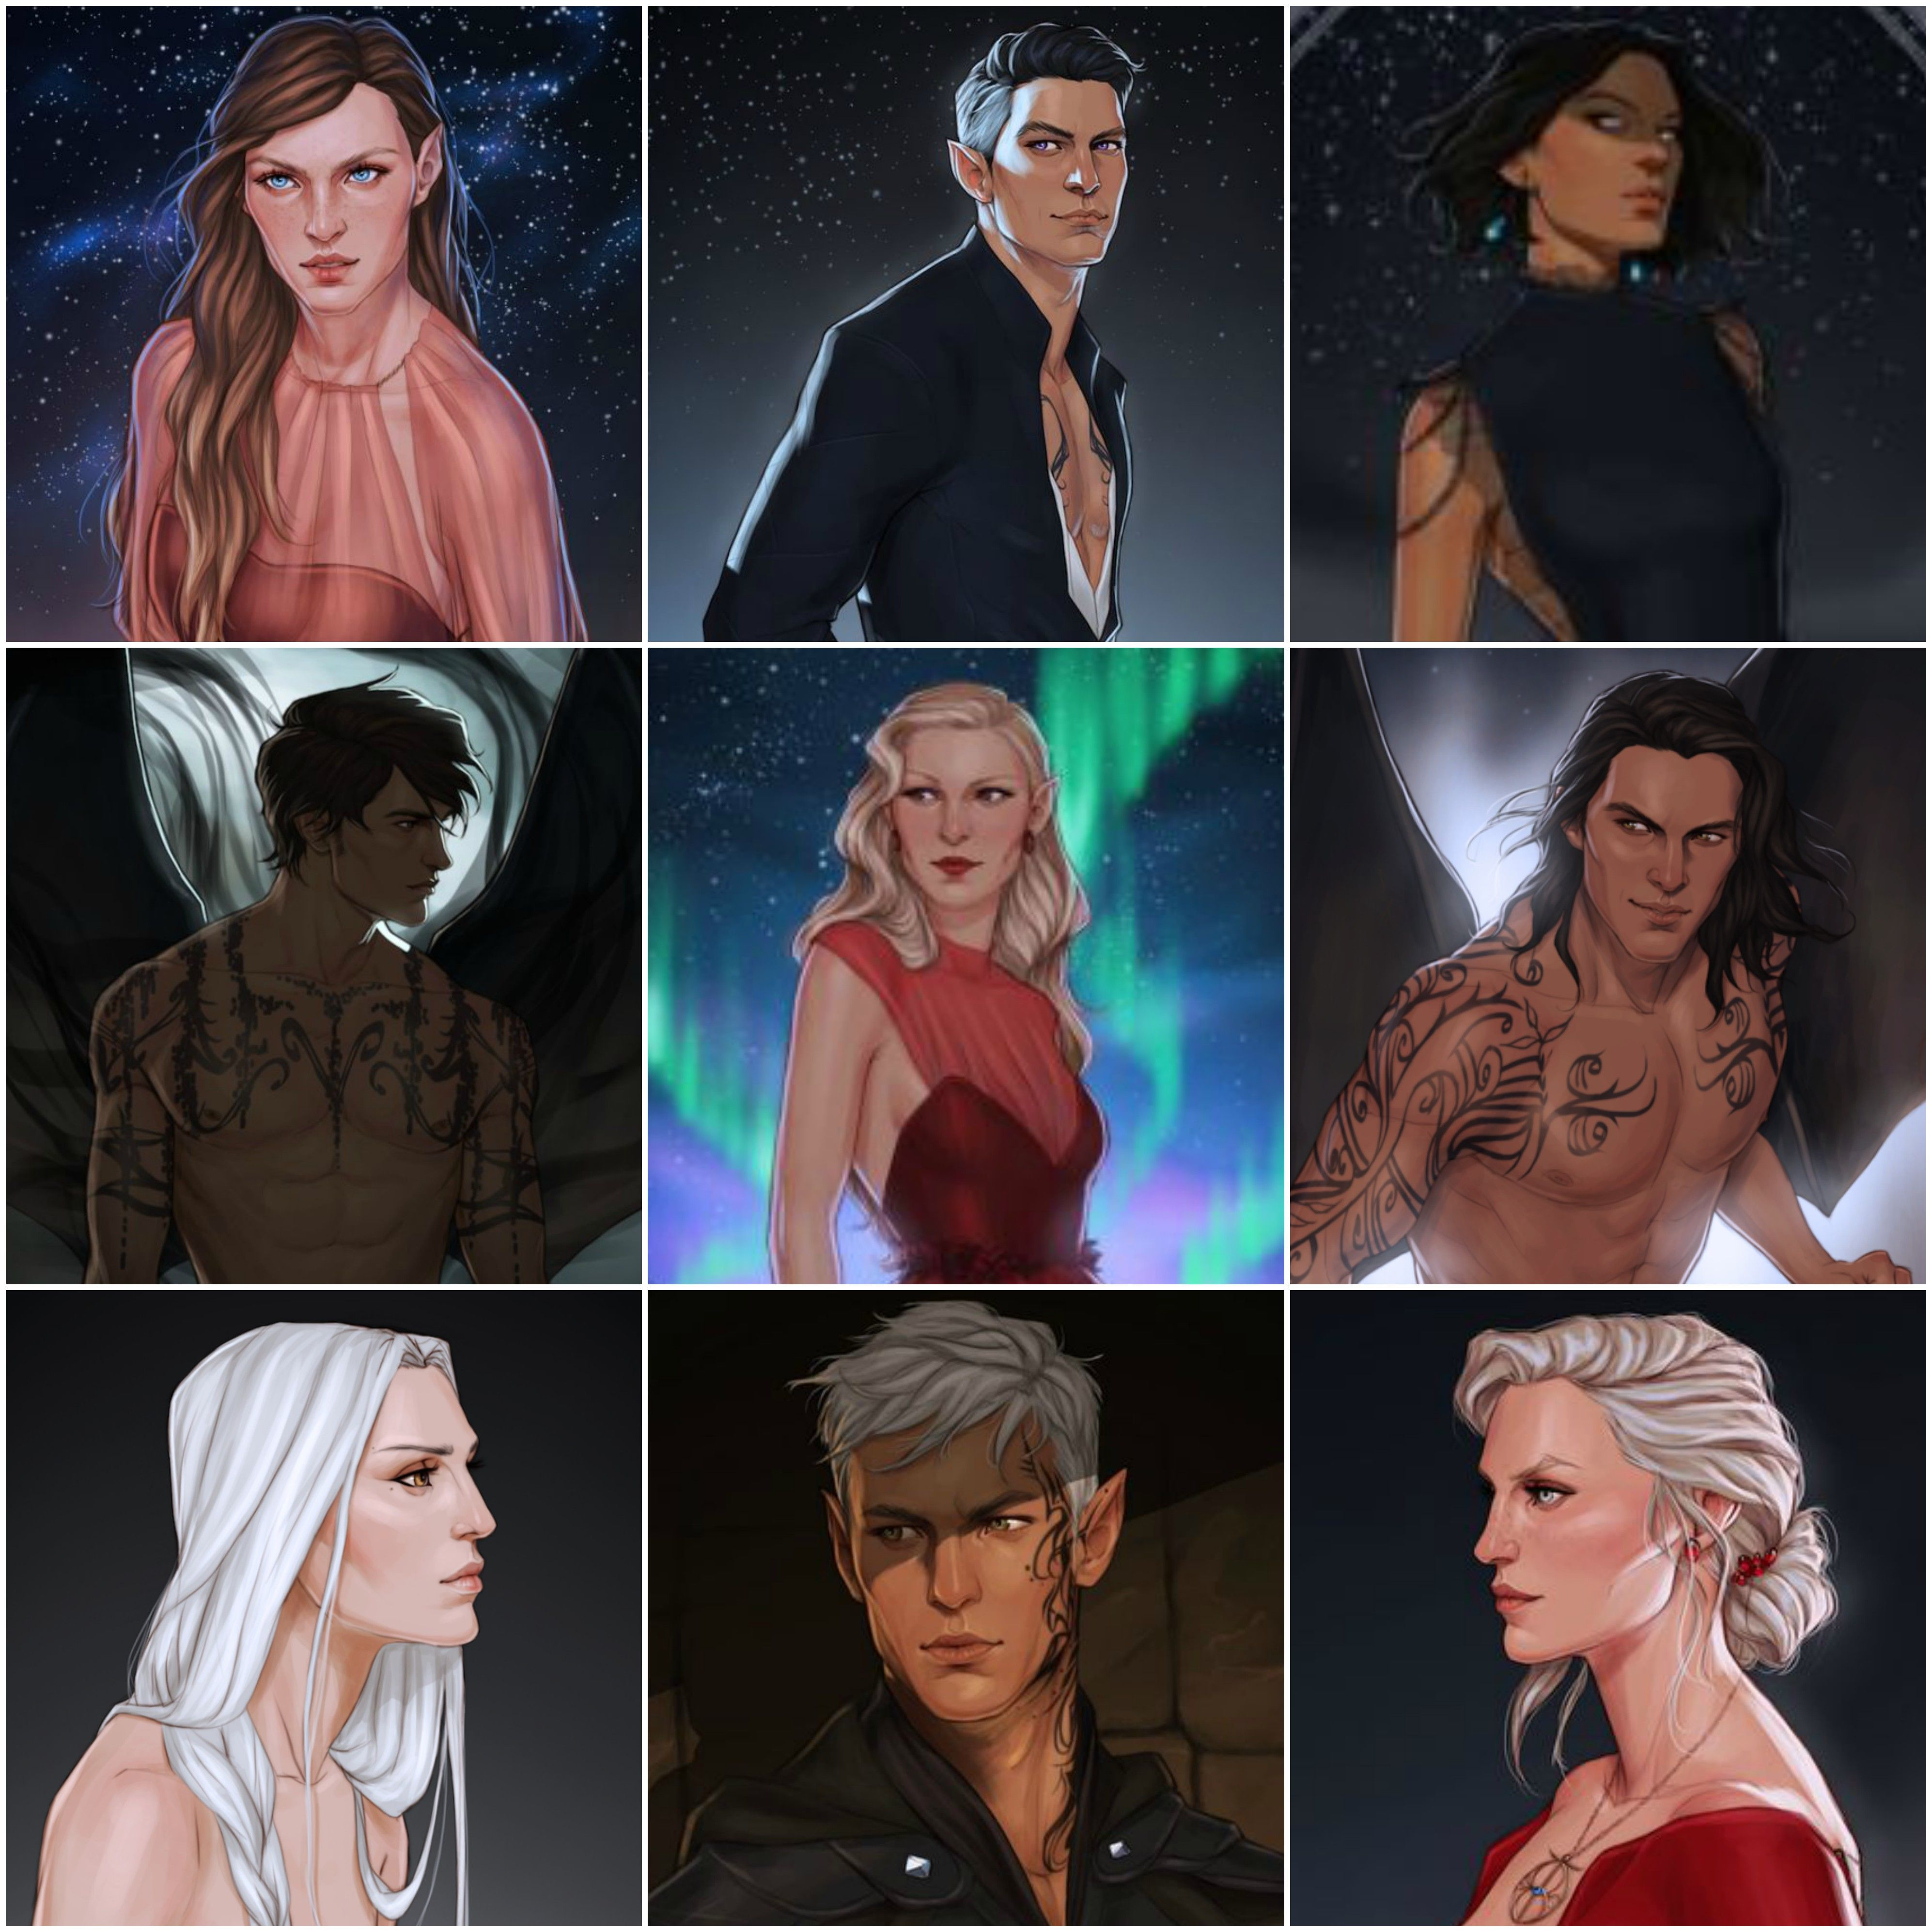 My Favourite Characters Of Throne Of Glass And A Court Of Mist And